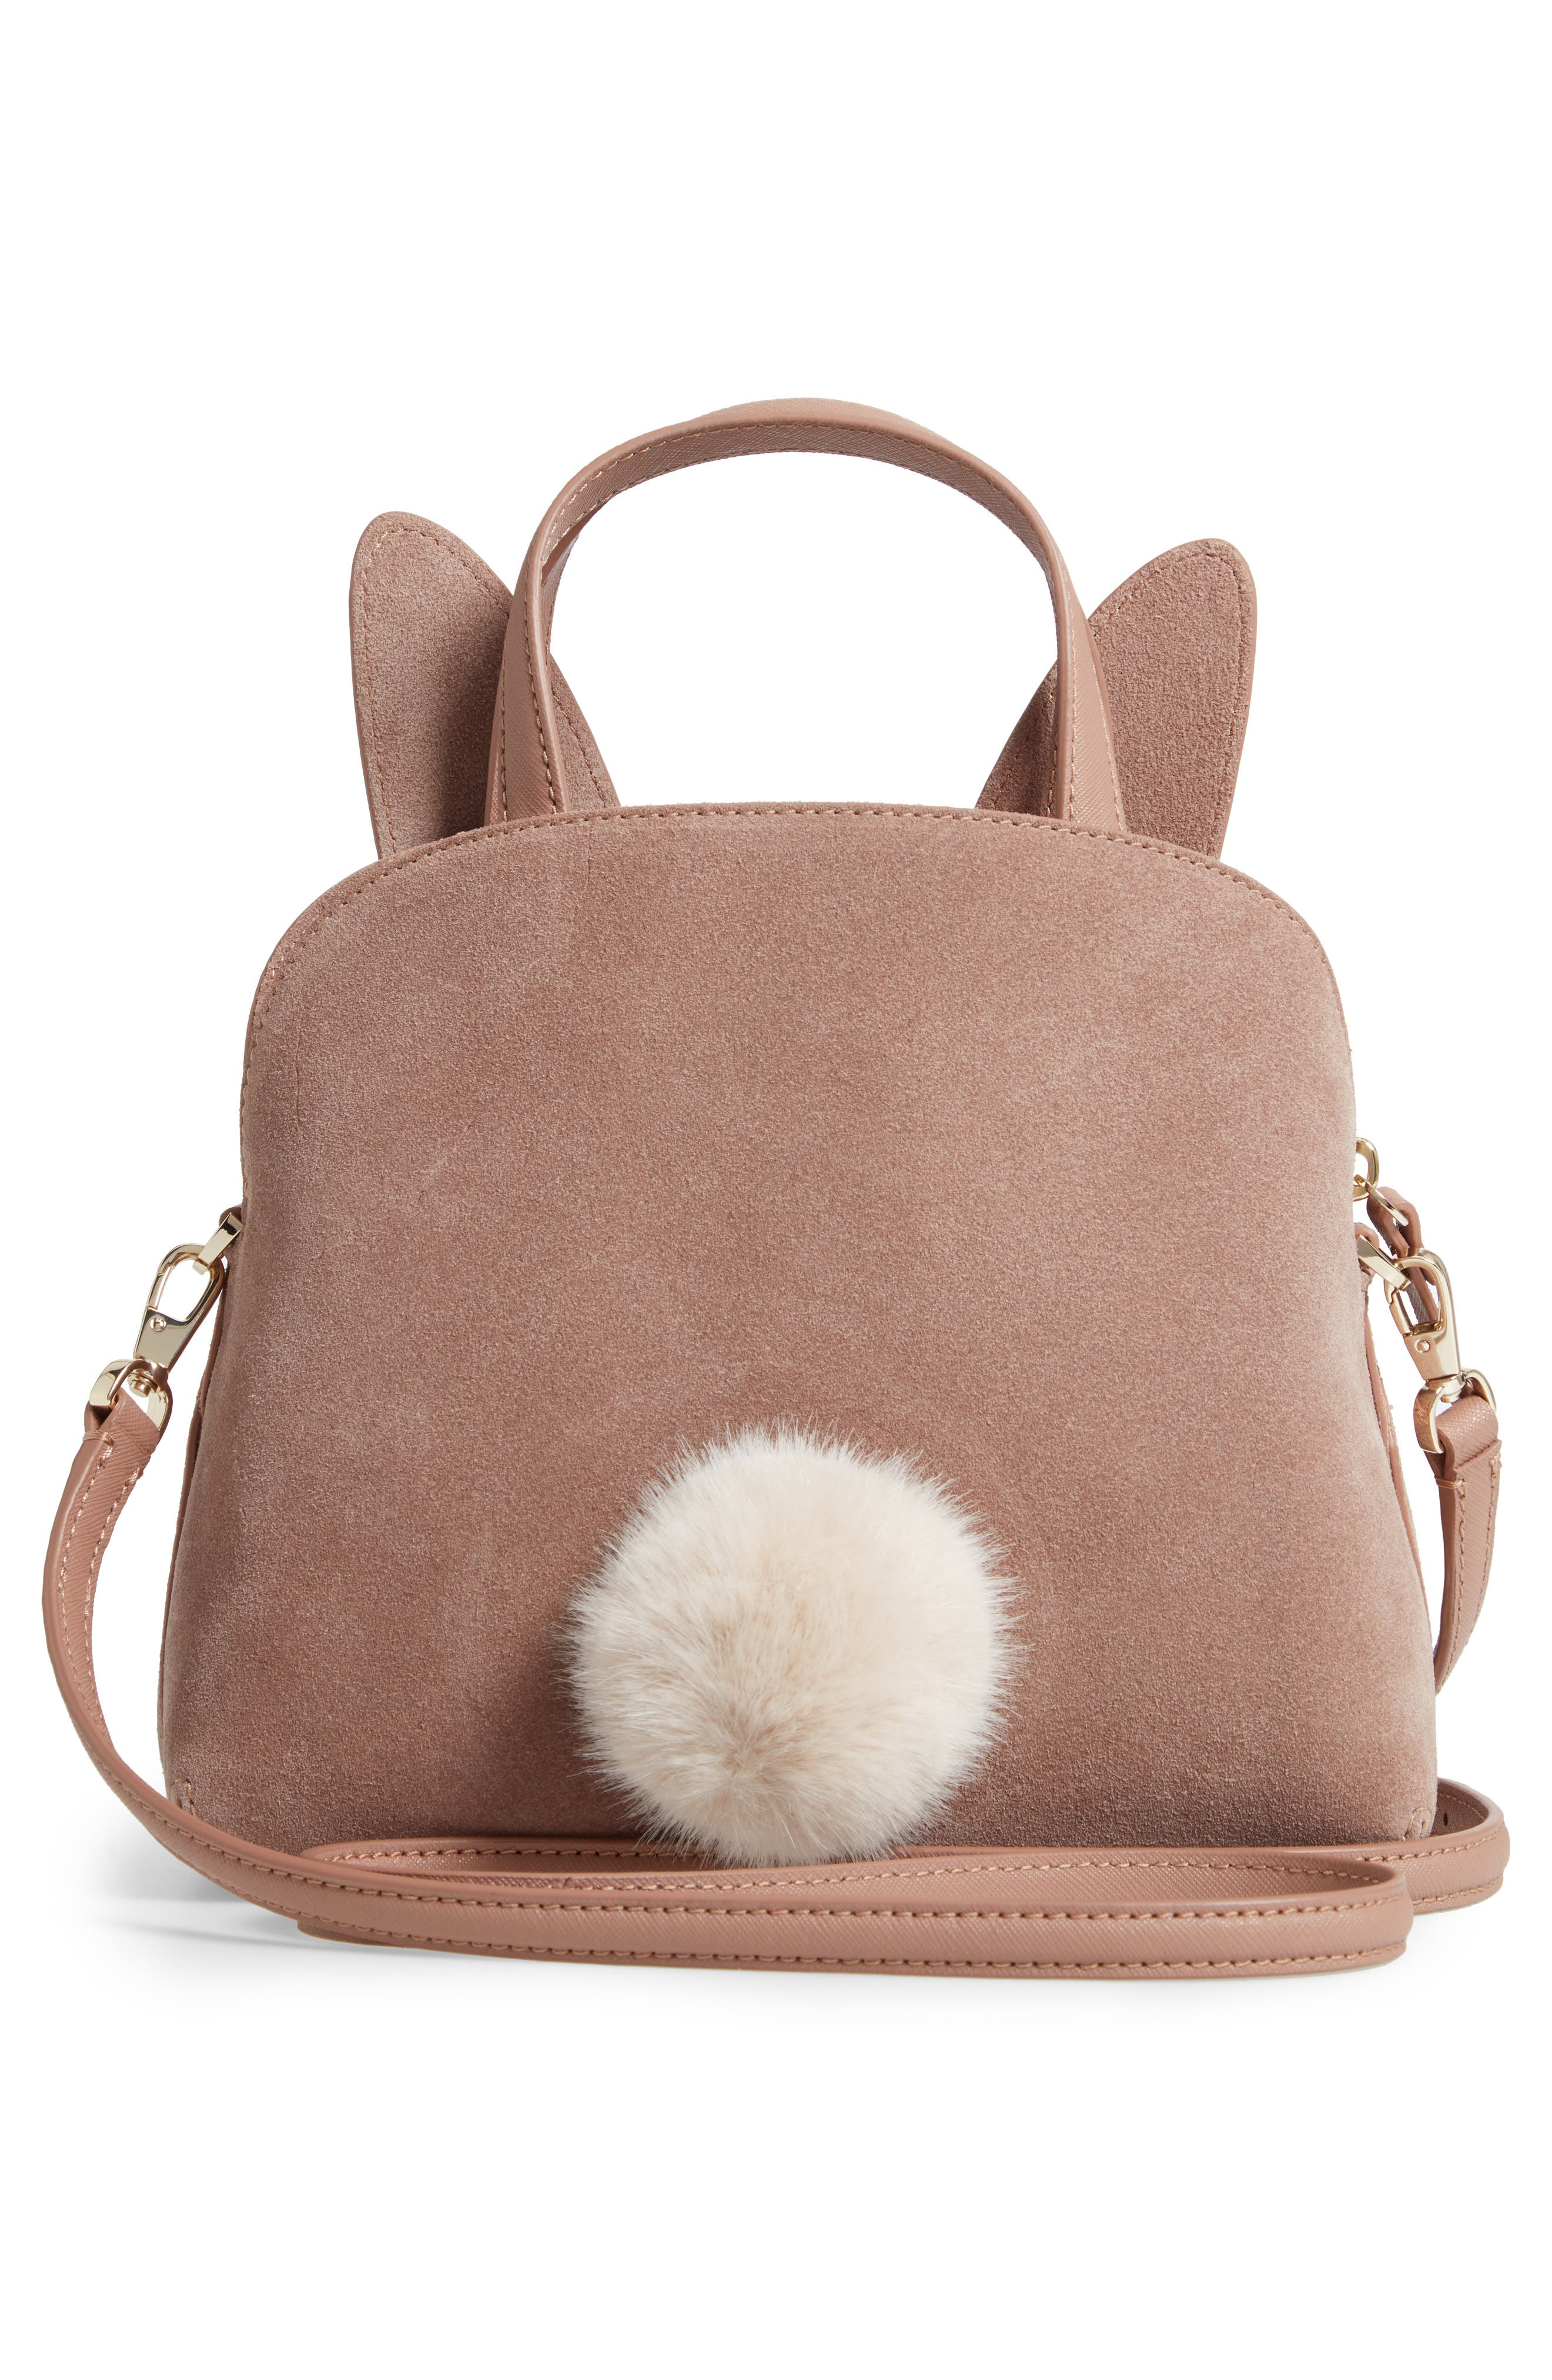 KATE SPADE NEW YORK,                             desert muse rabbit small lotti bag,                             Alternate thumbnail 3, color,                             200